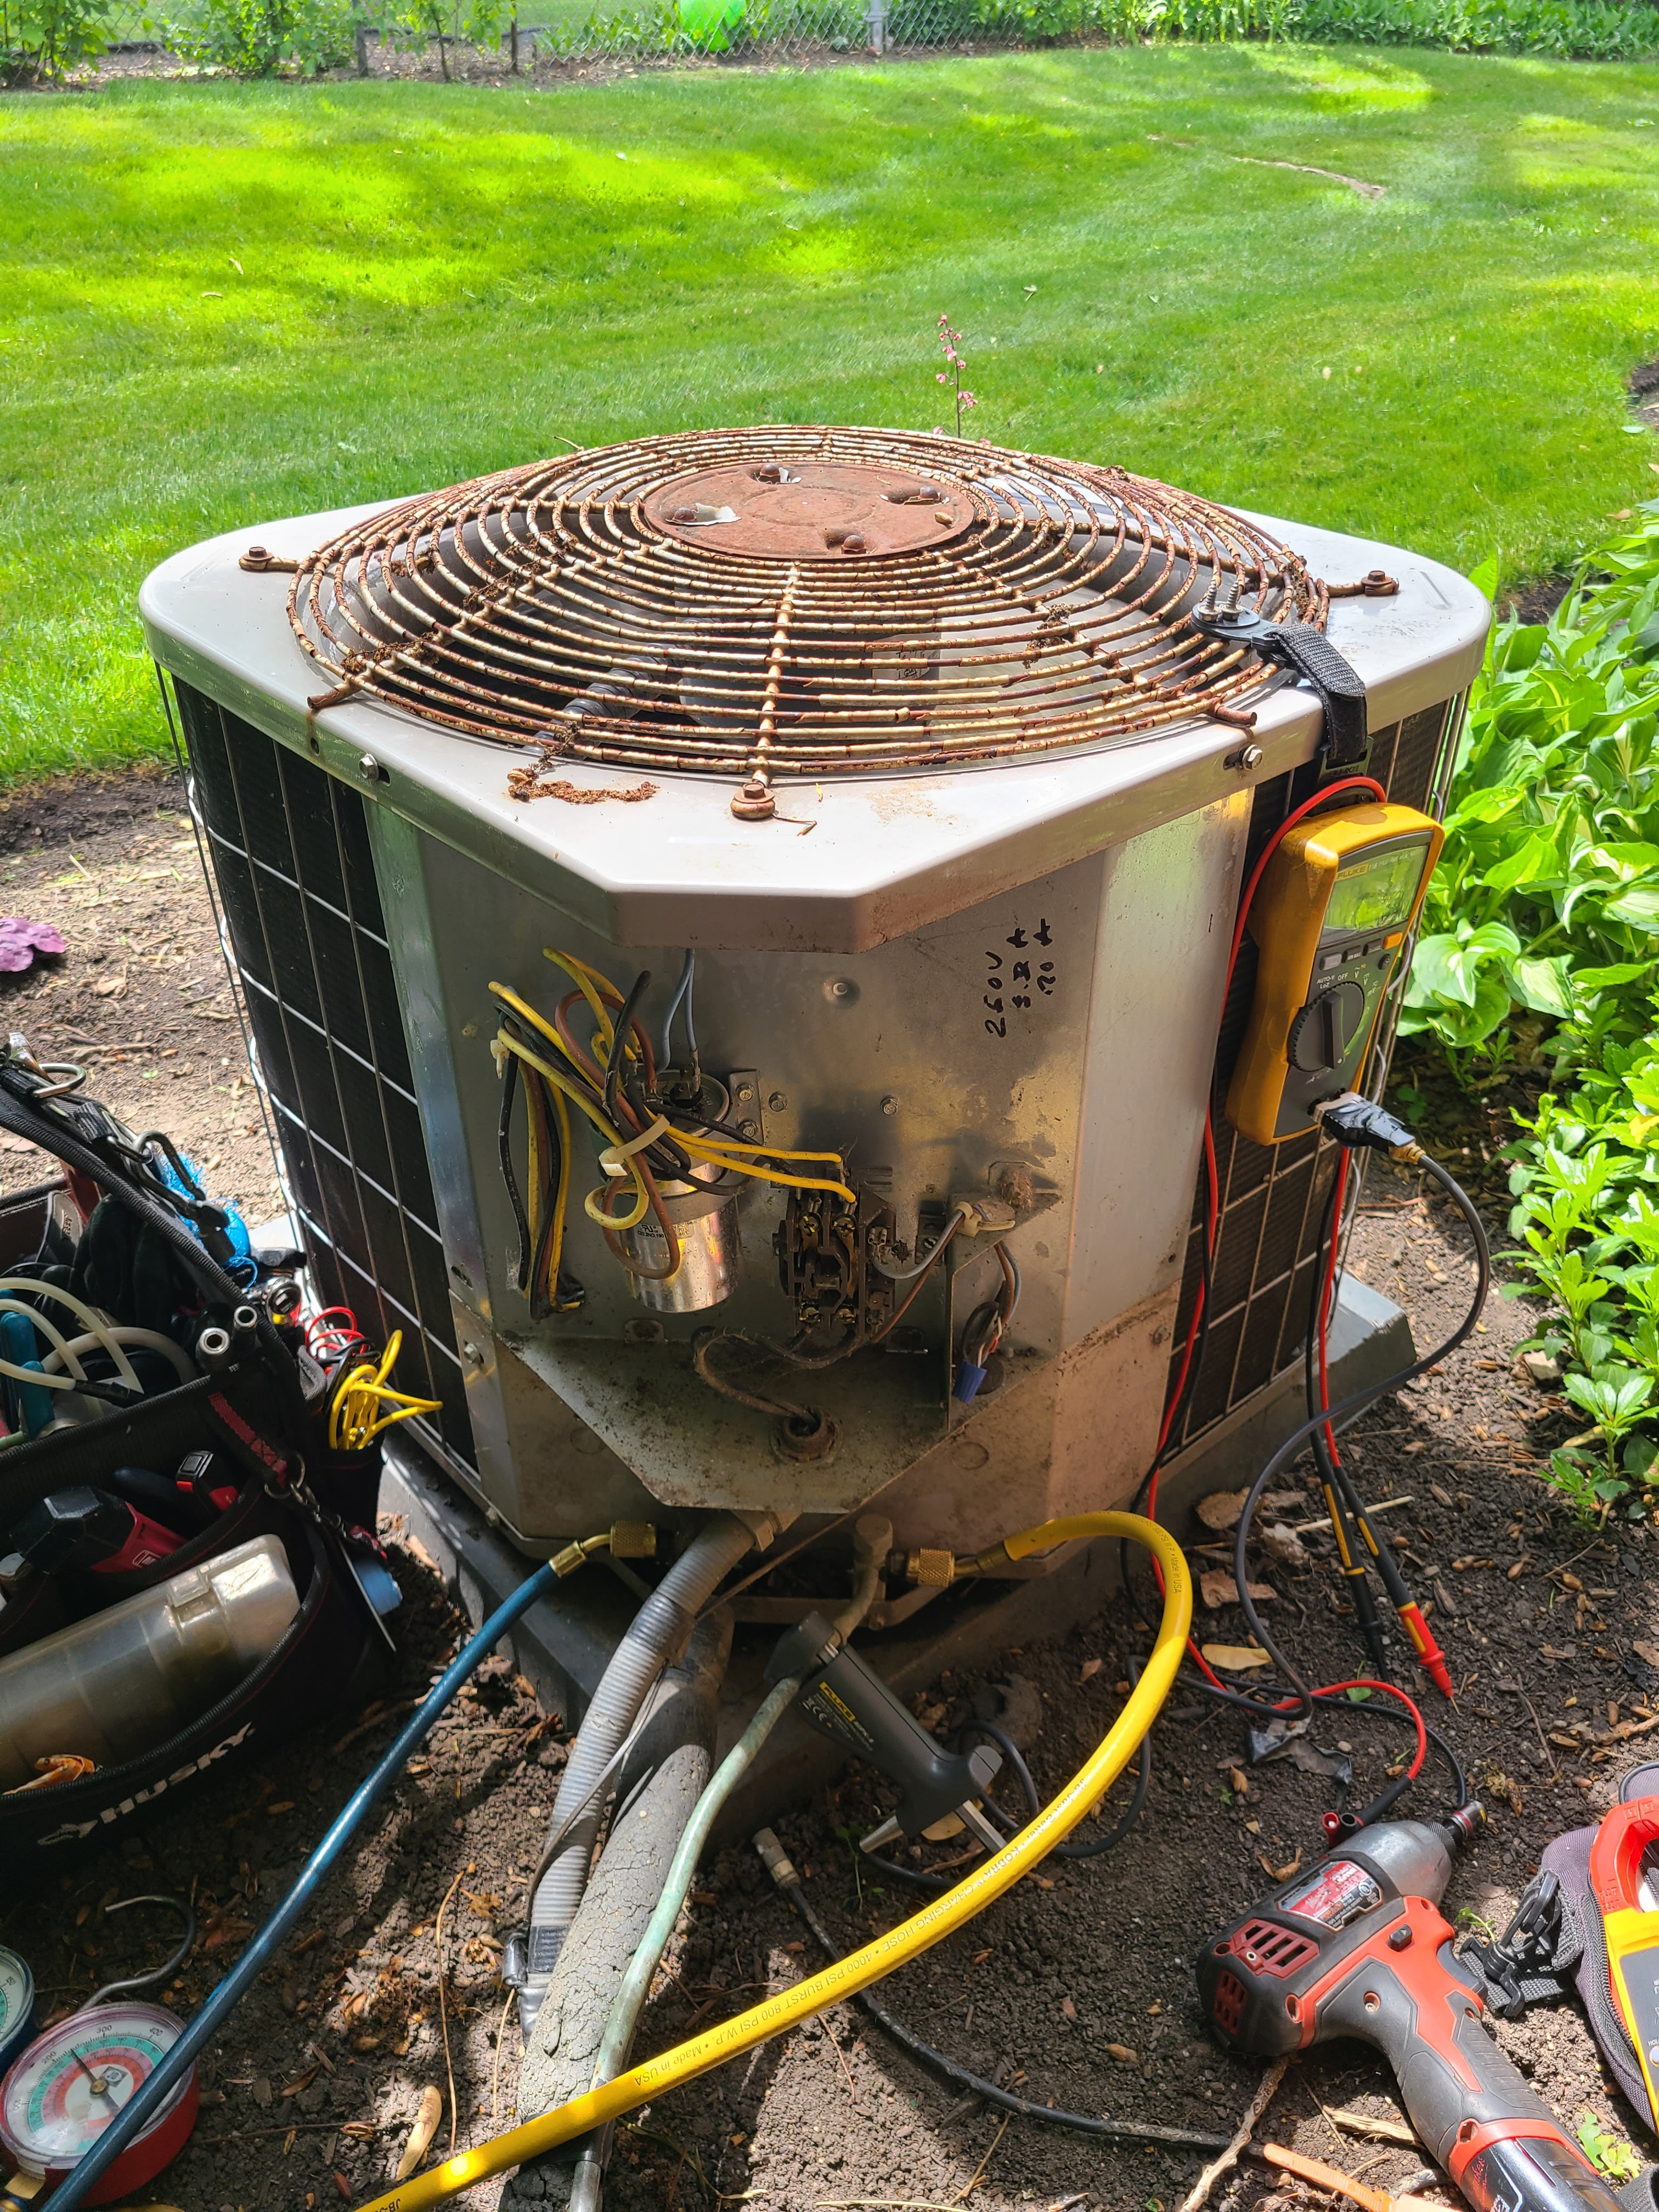 Carrier spring ac tune up. System cleaned and checked and ready for summer.